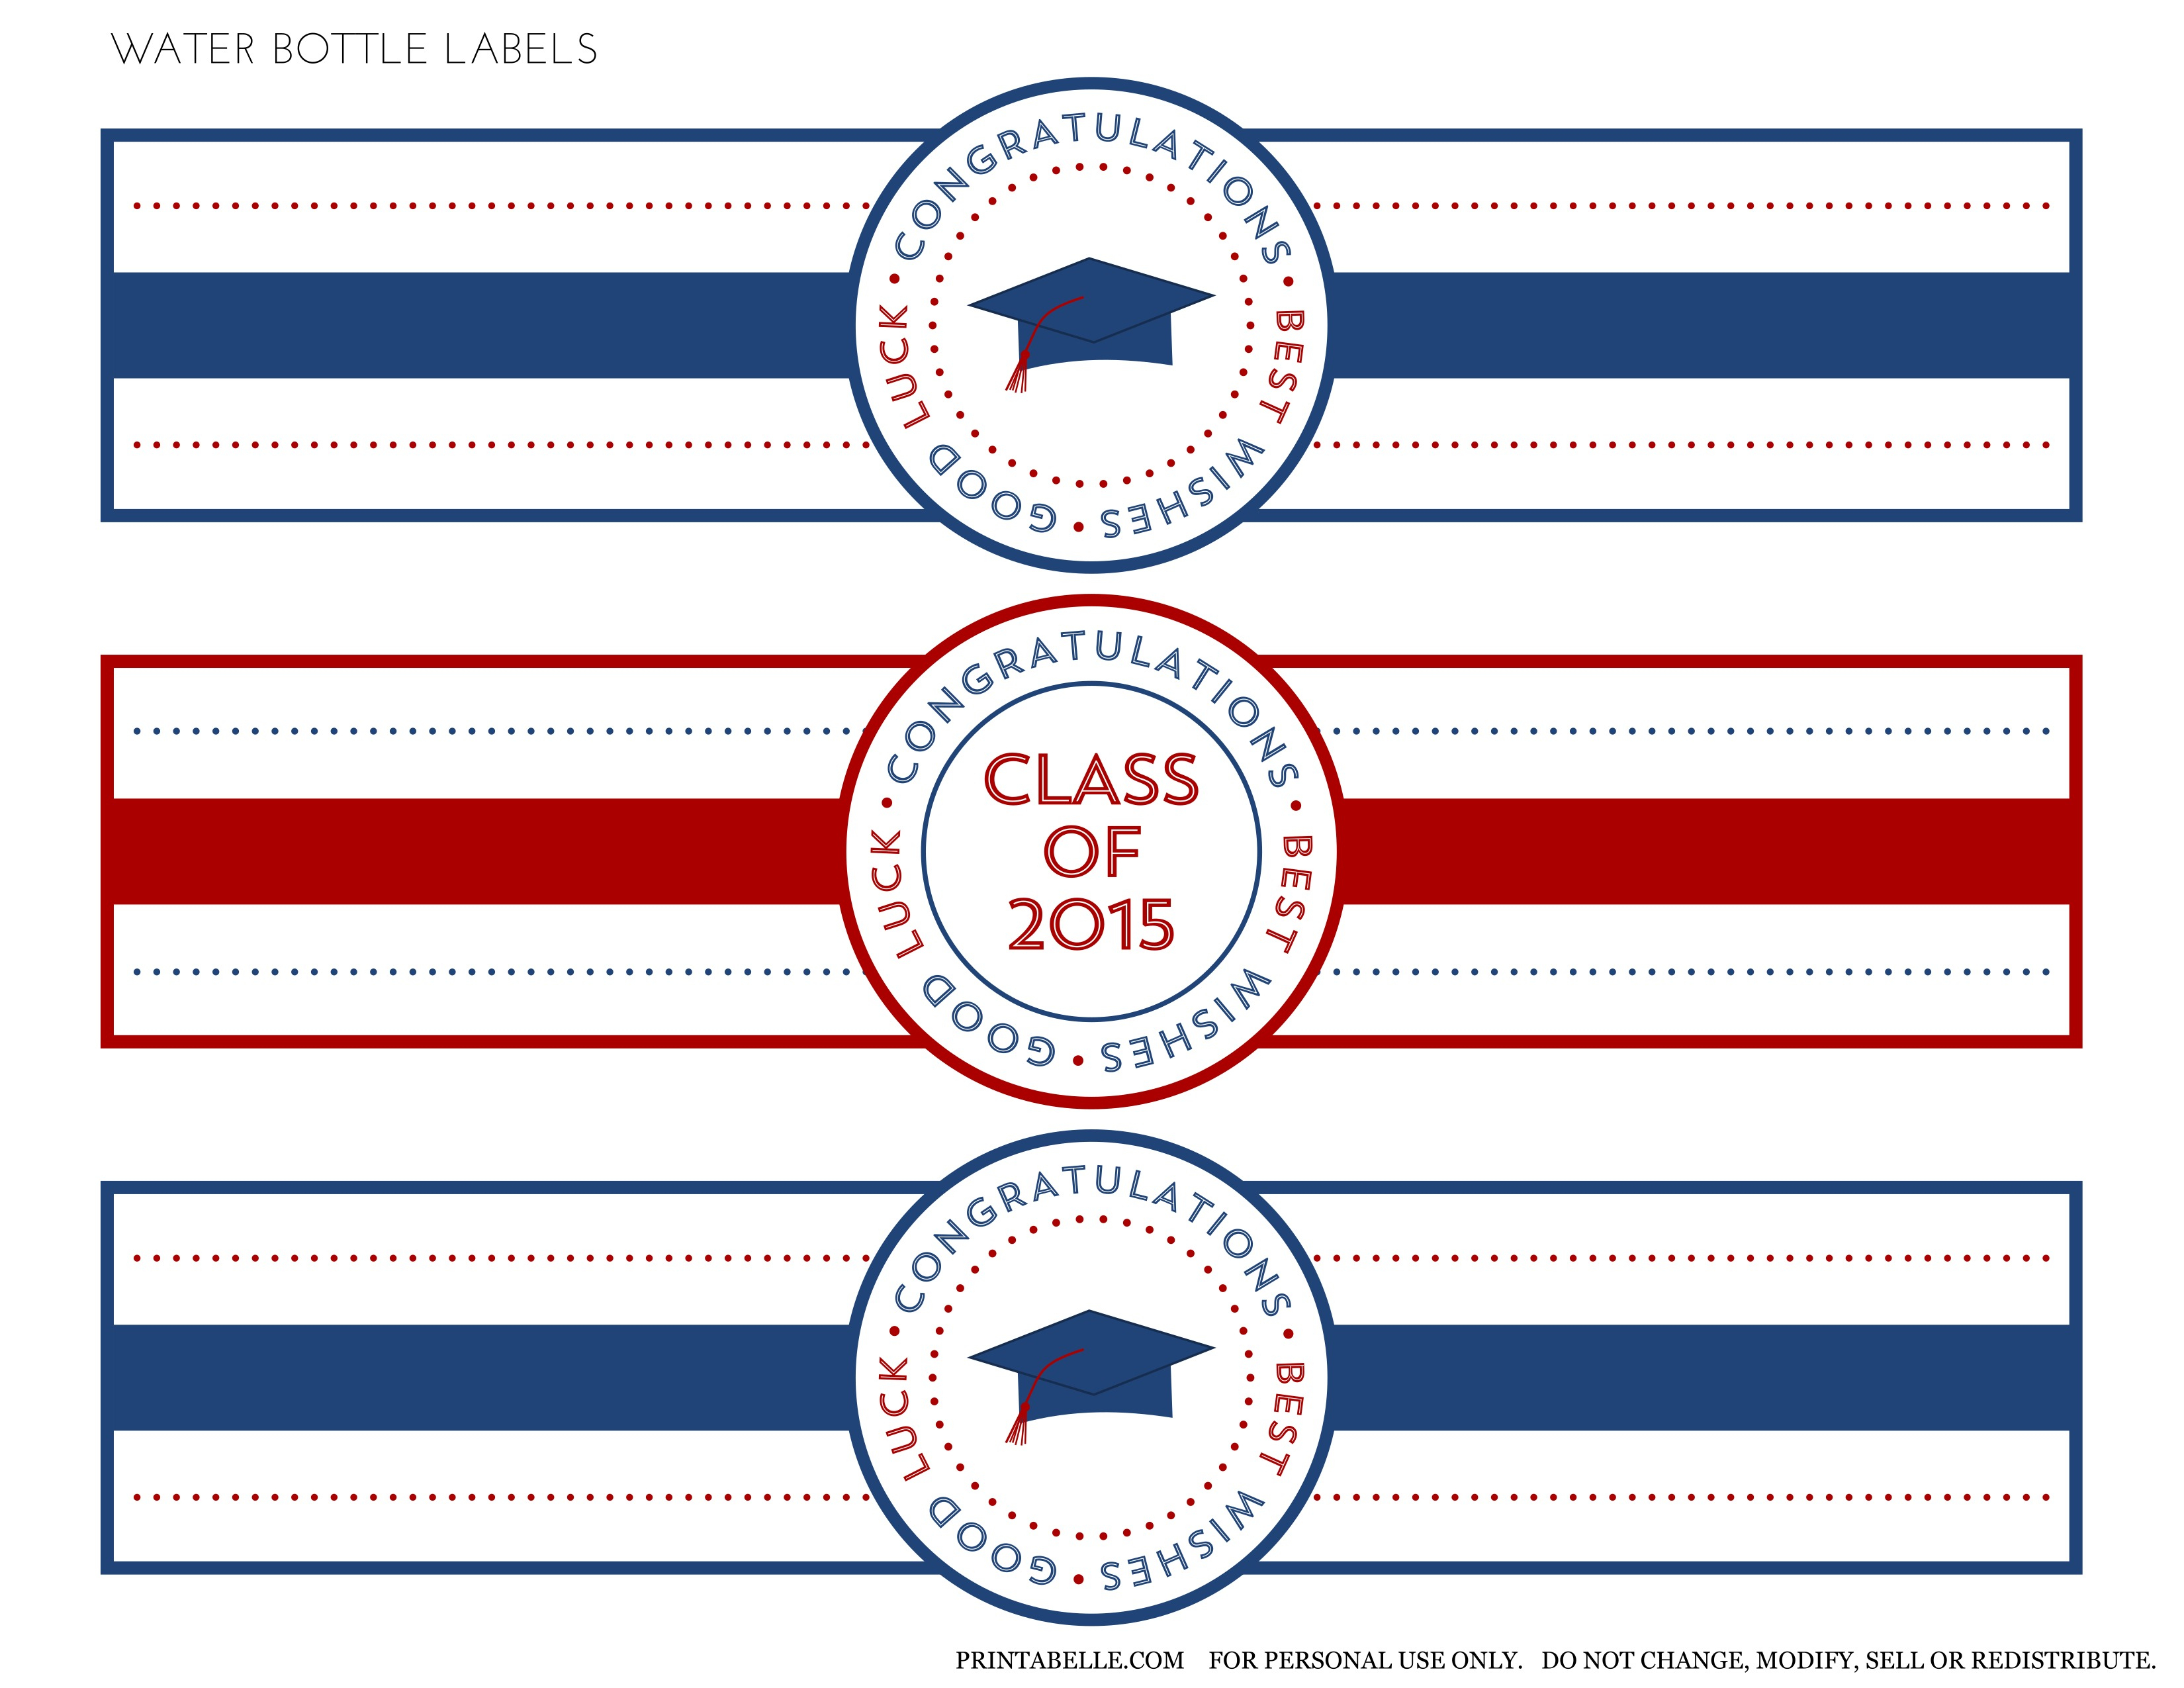 Free 2015 Graduation Printables | Catch My Party - Free Printable Water Bottle Labels Graduation